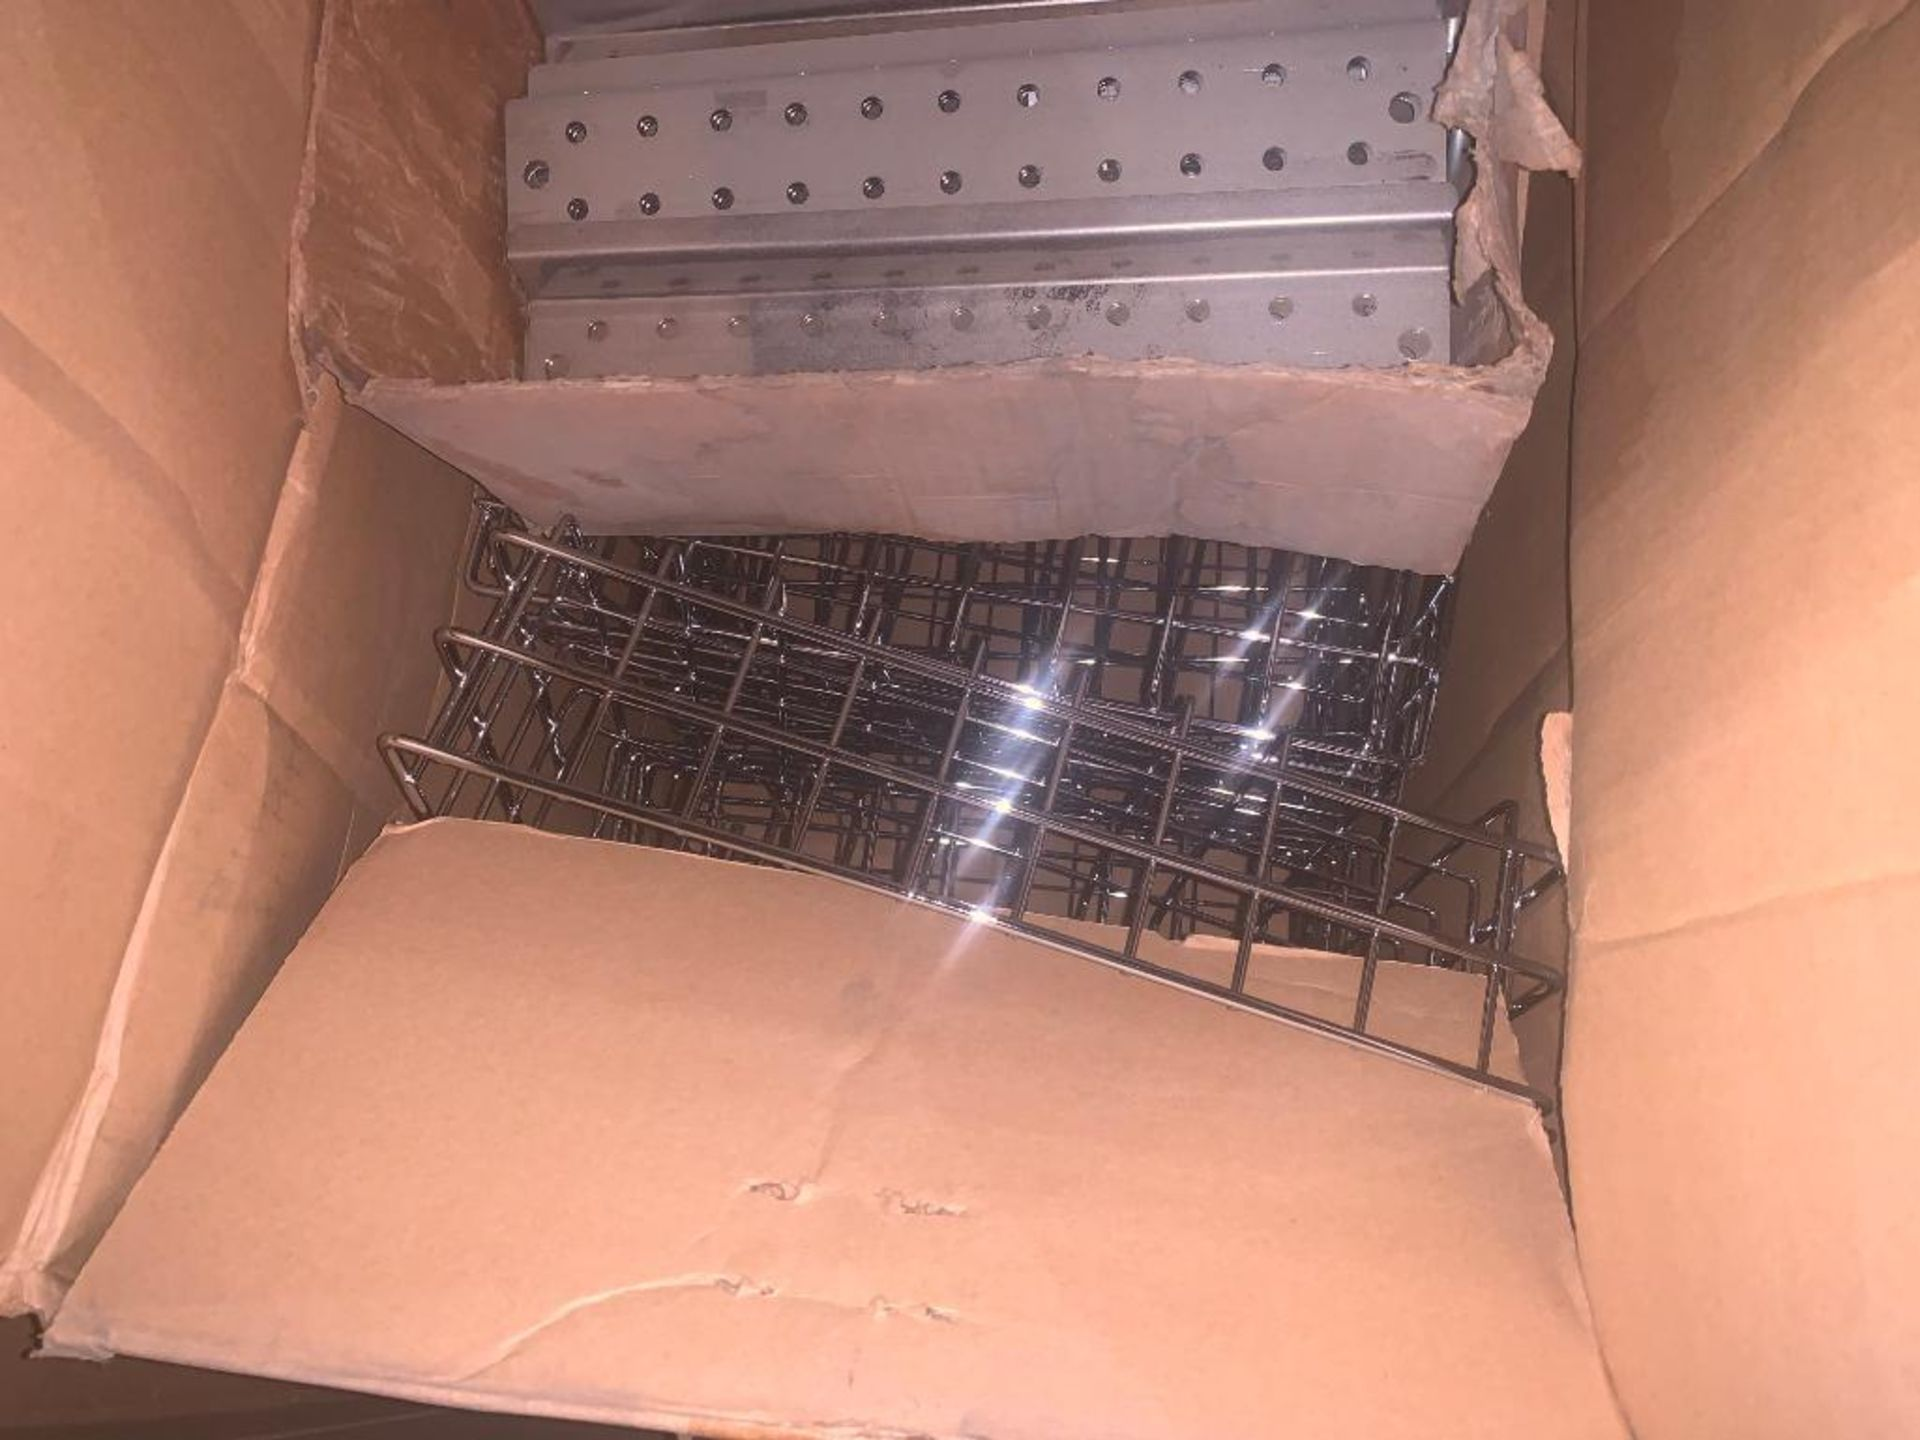 pallet of wire baskets and wire parts - Image 7 of 7